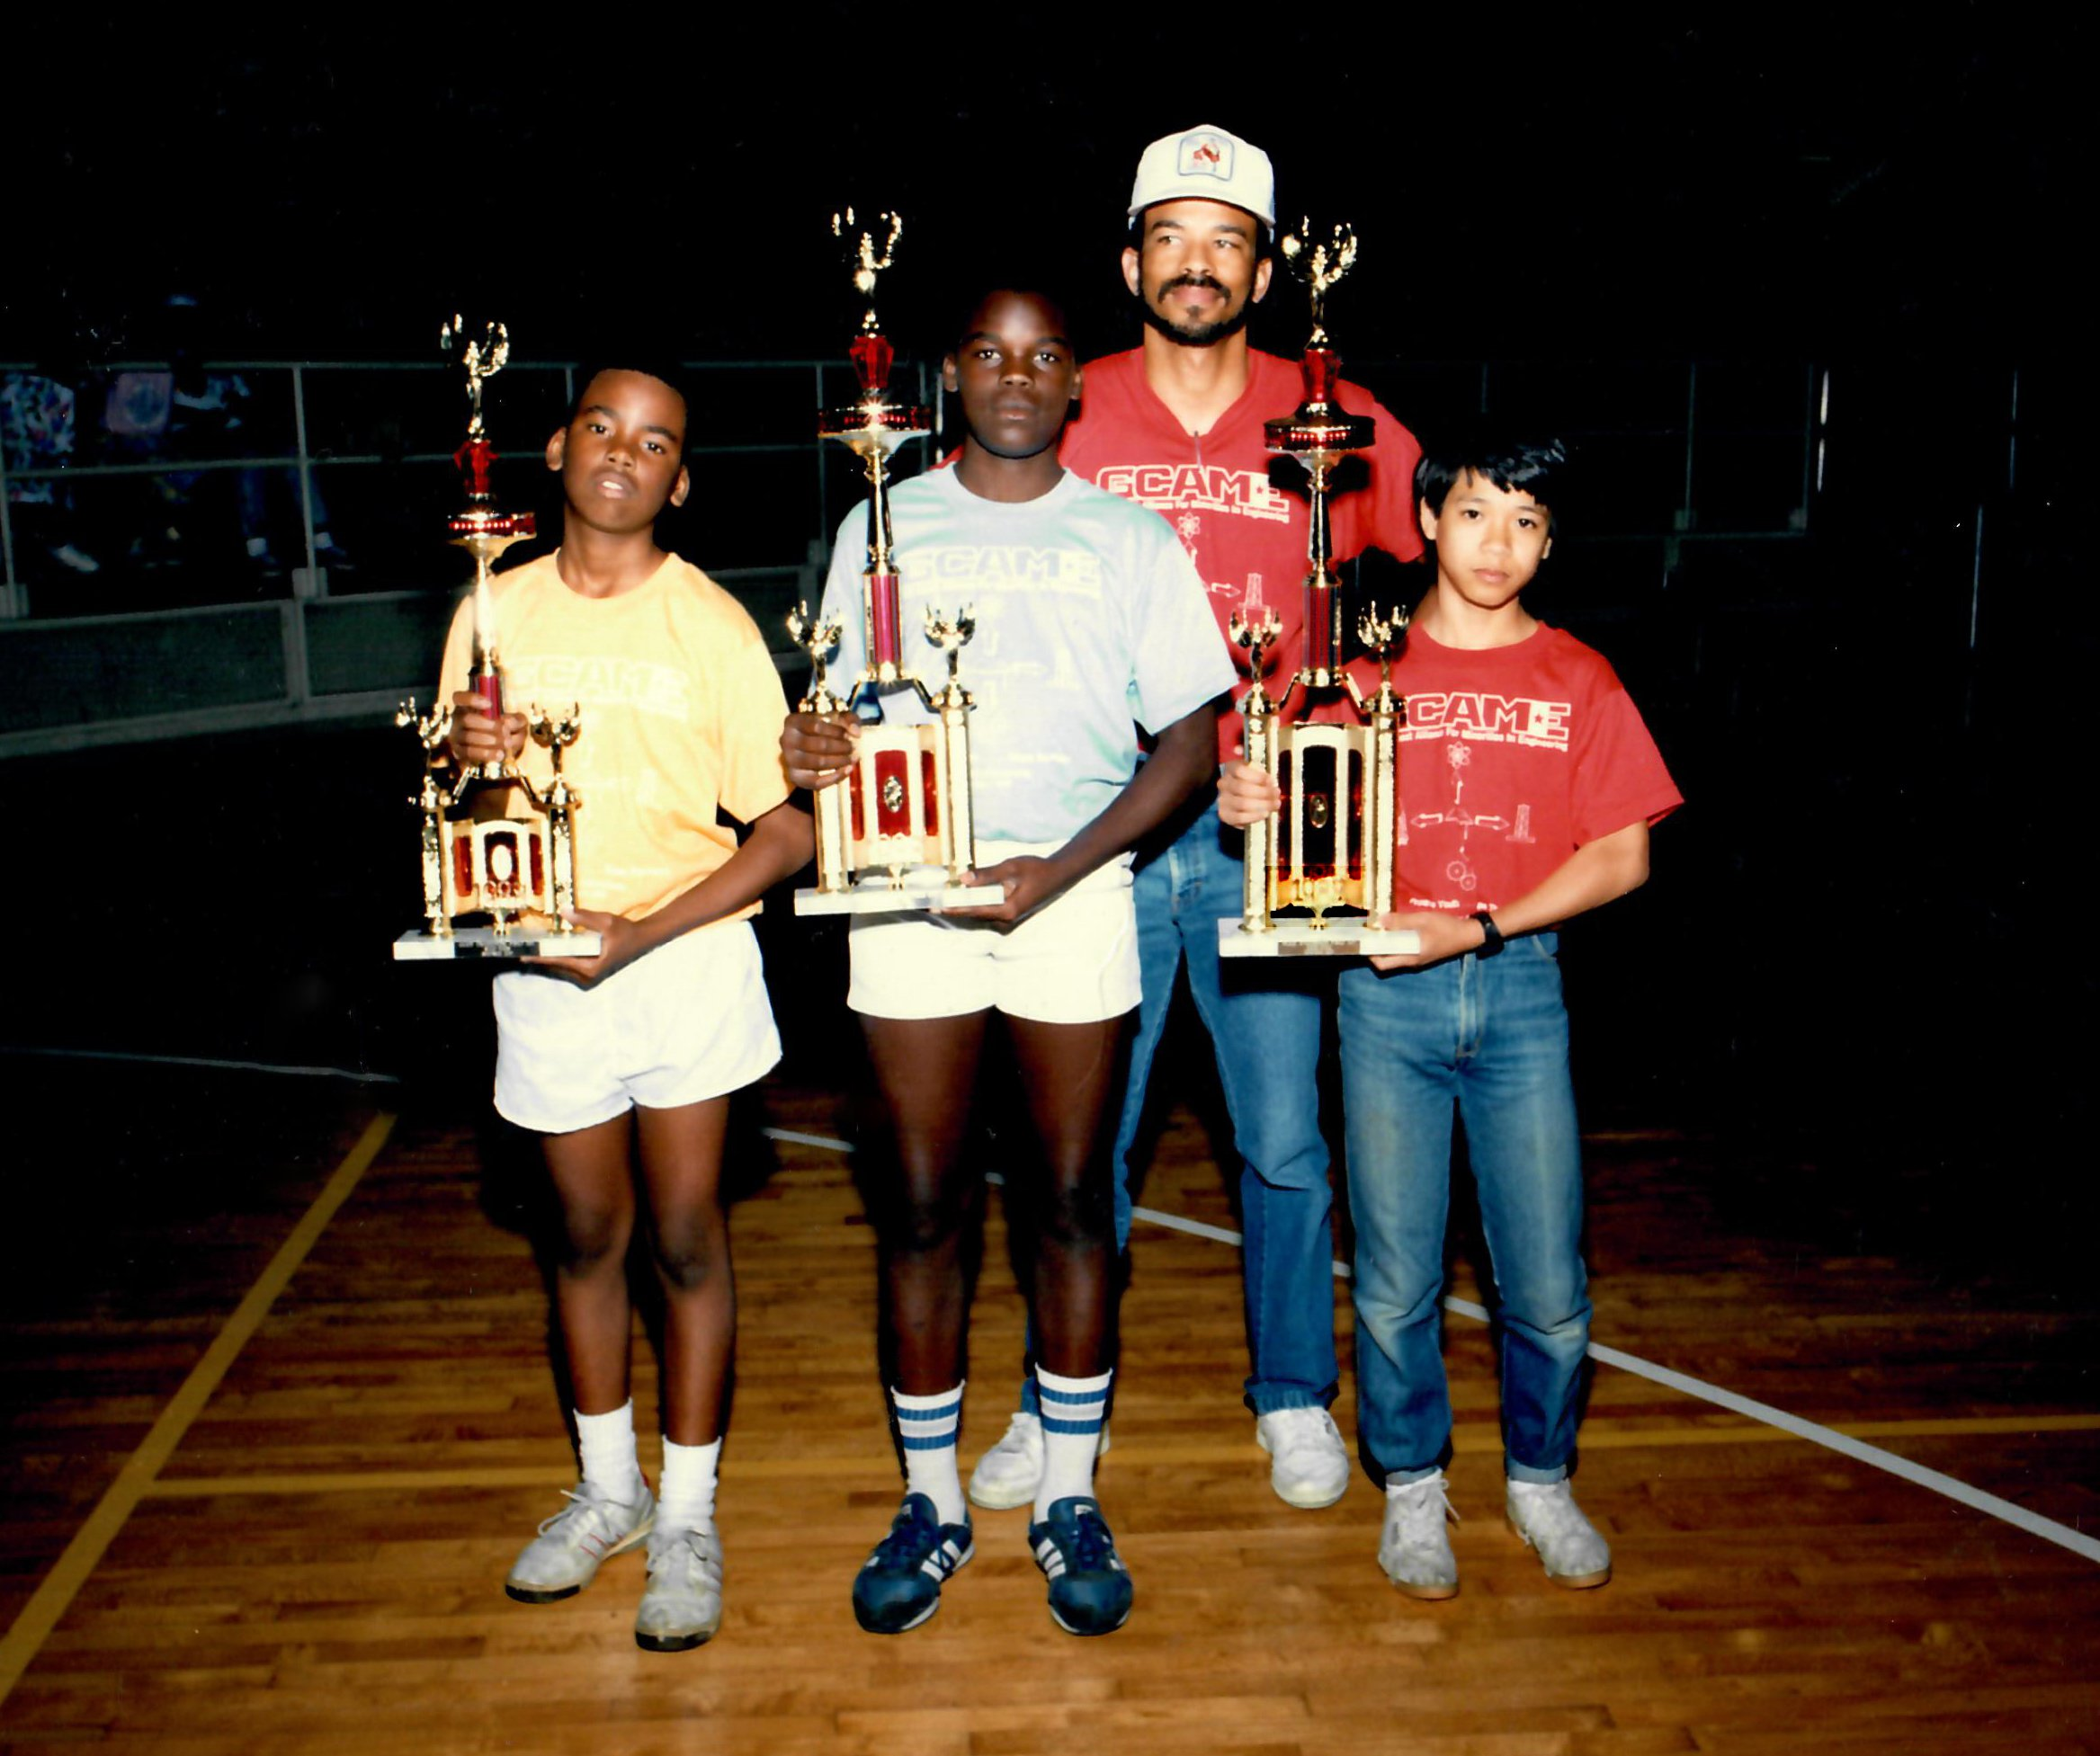 tame historical photo 34 gc tame competition 1988 trophies2